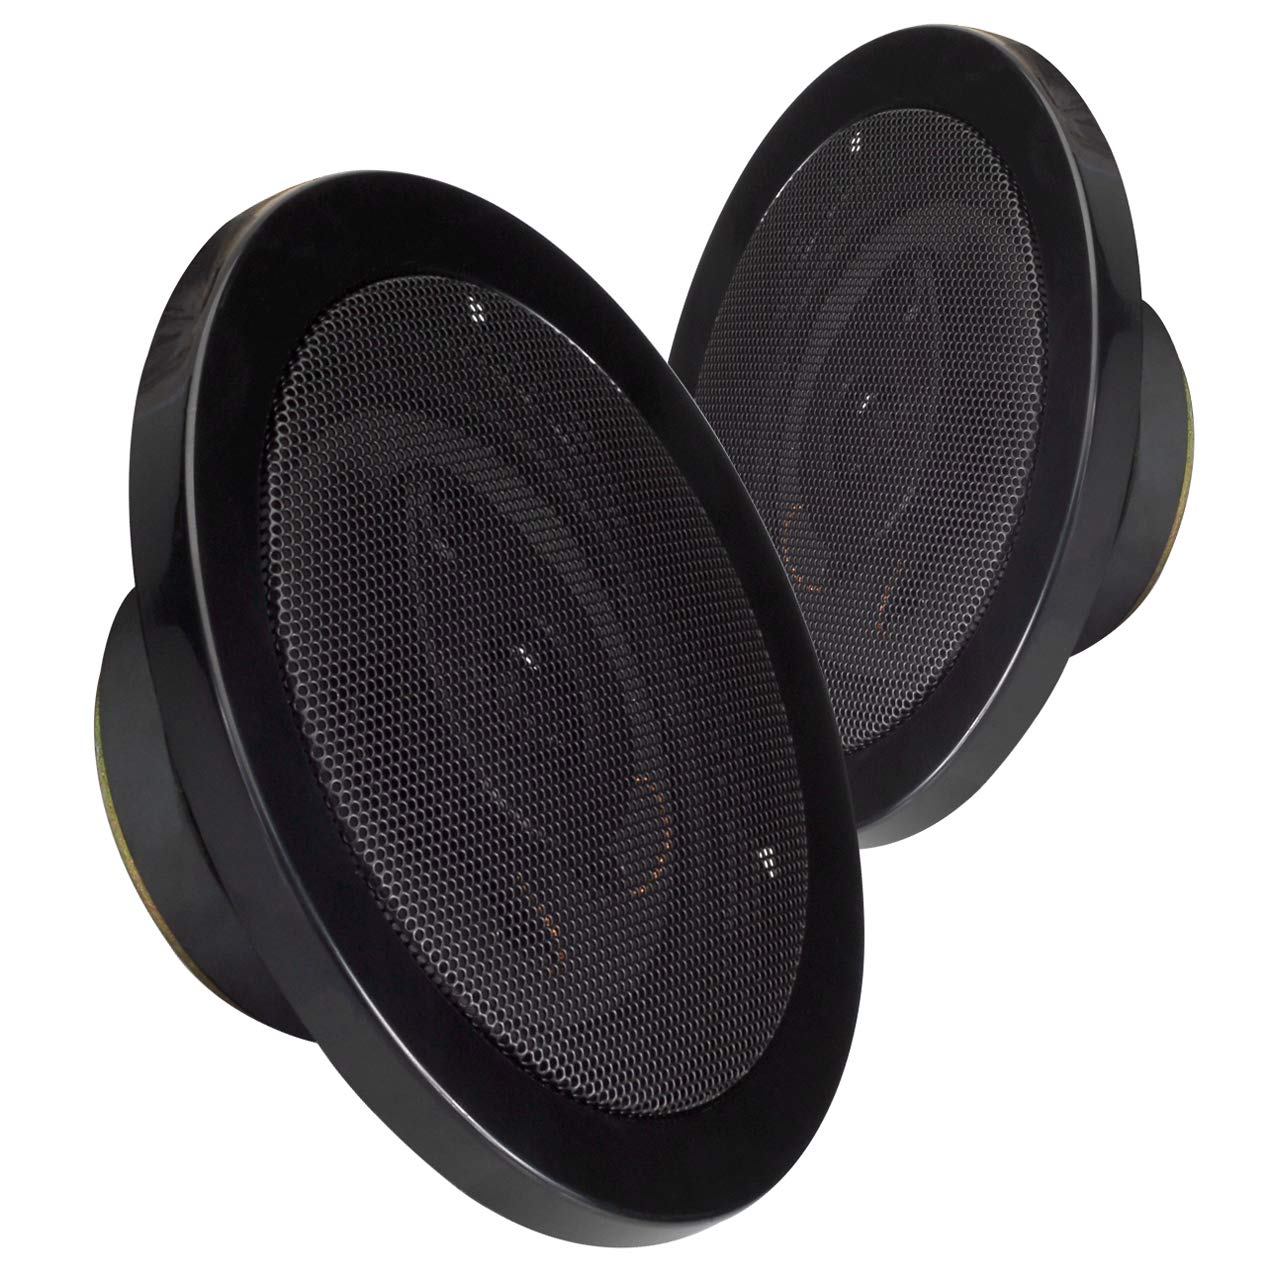 MAGNADYNE LS515C 5-1//4 INCH 3-Way Speakers Sold as a Pair Cream Color